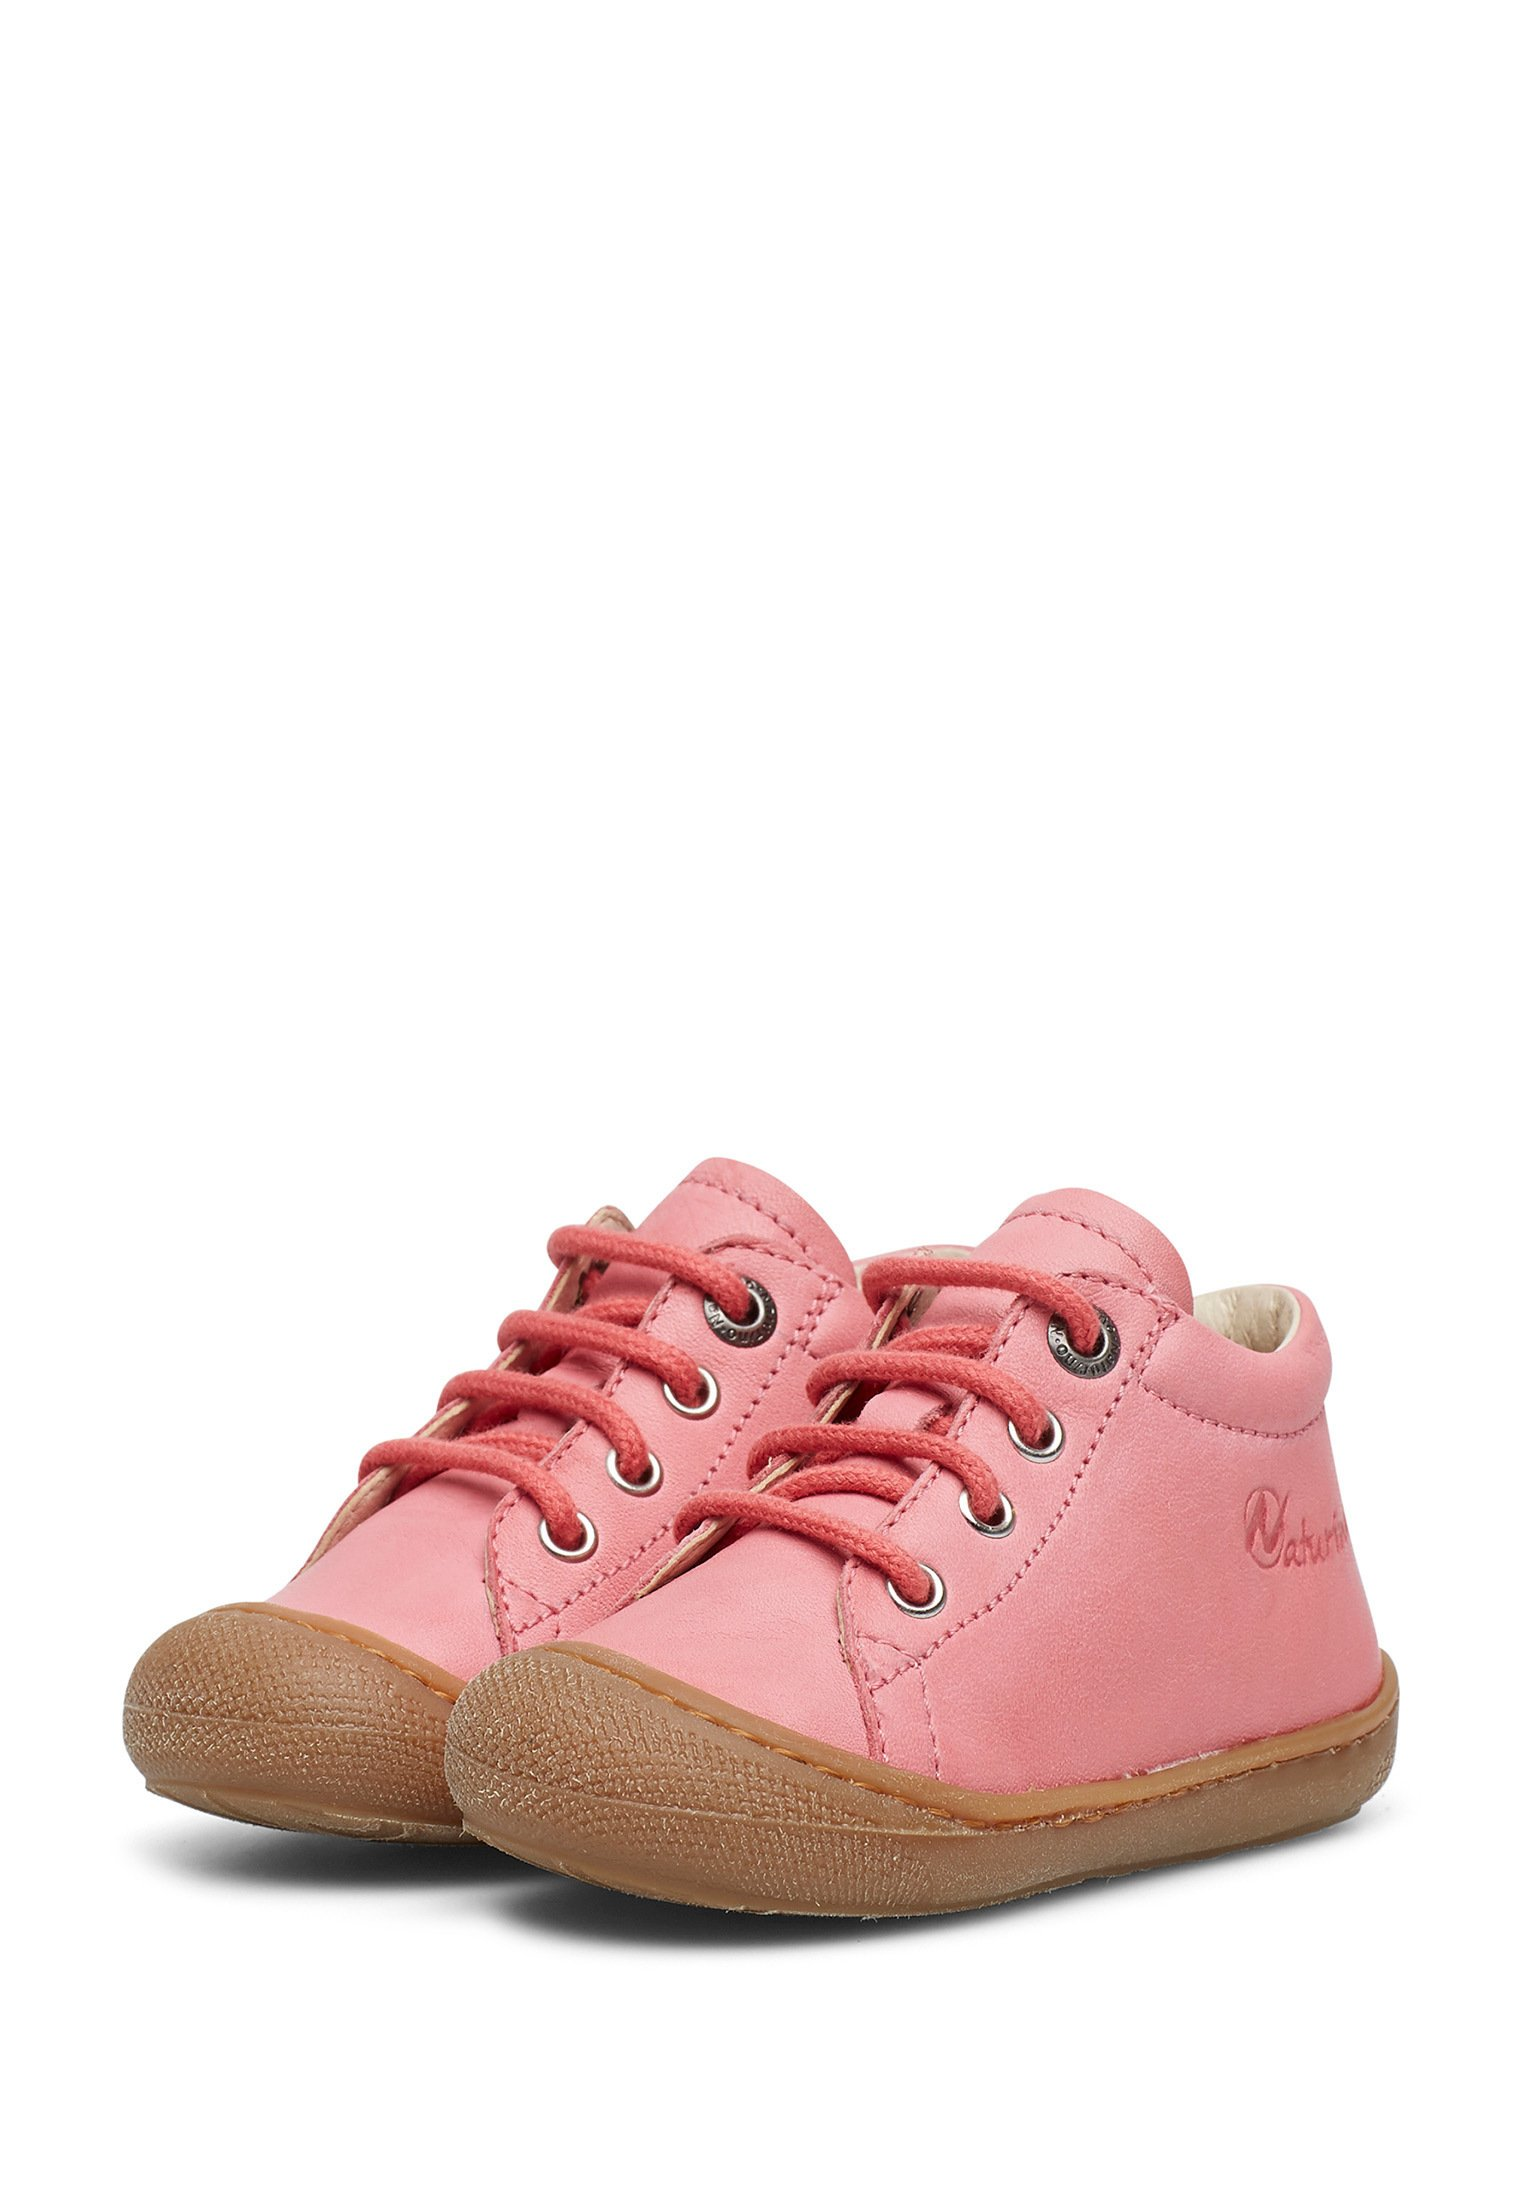 Naturino COCOON - Baby shoes - light pink